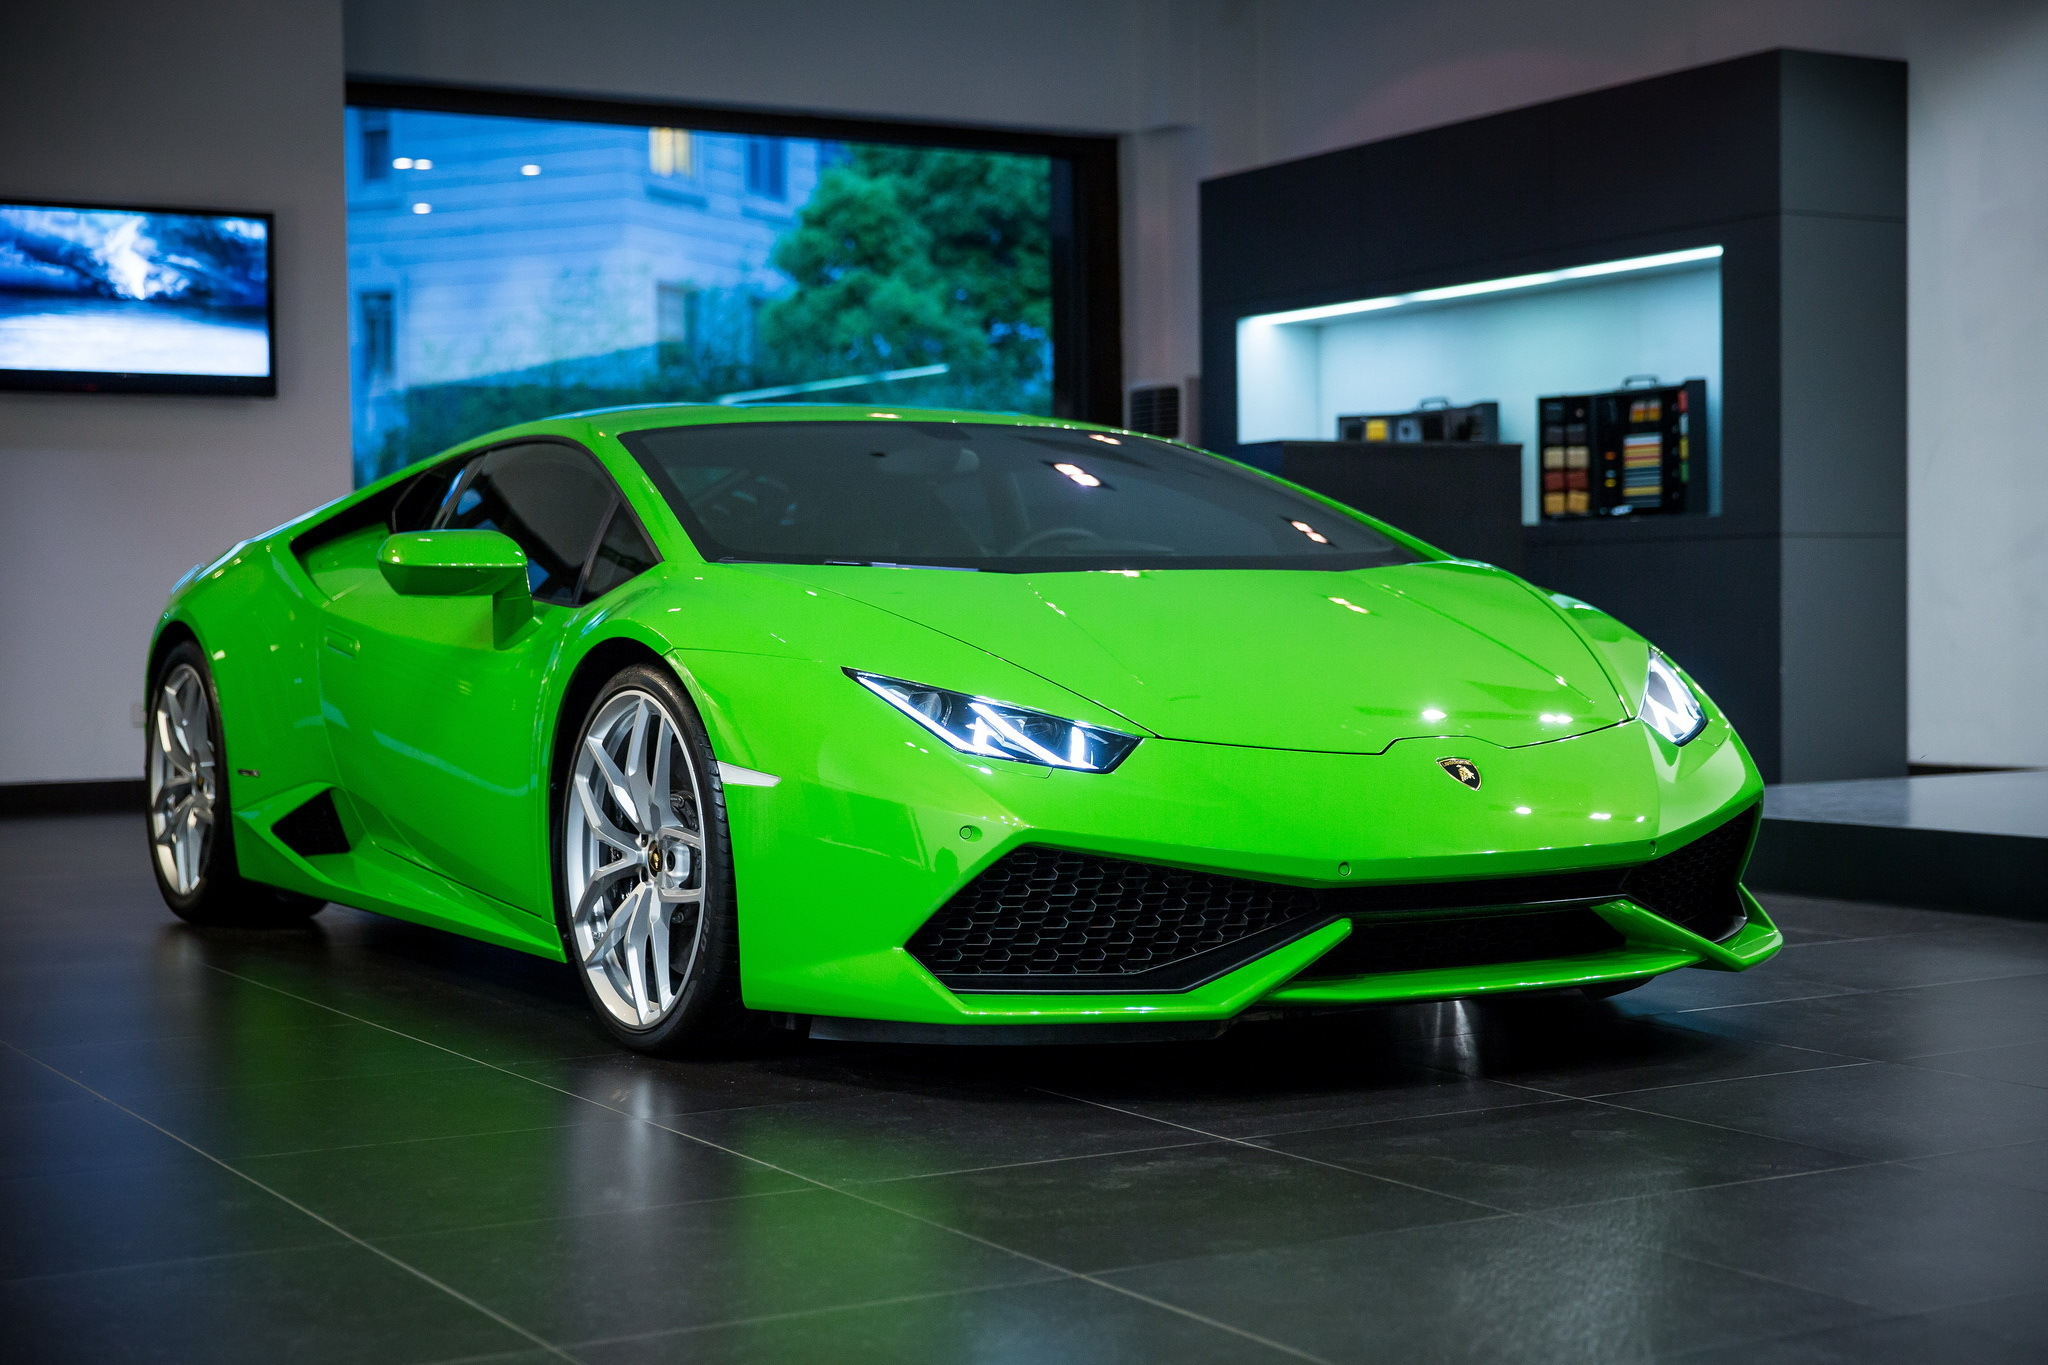 lamborghini huracan background supercar sport vehicle vehicles preview